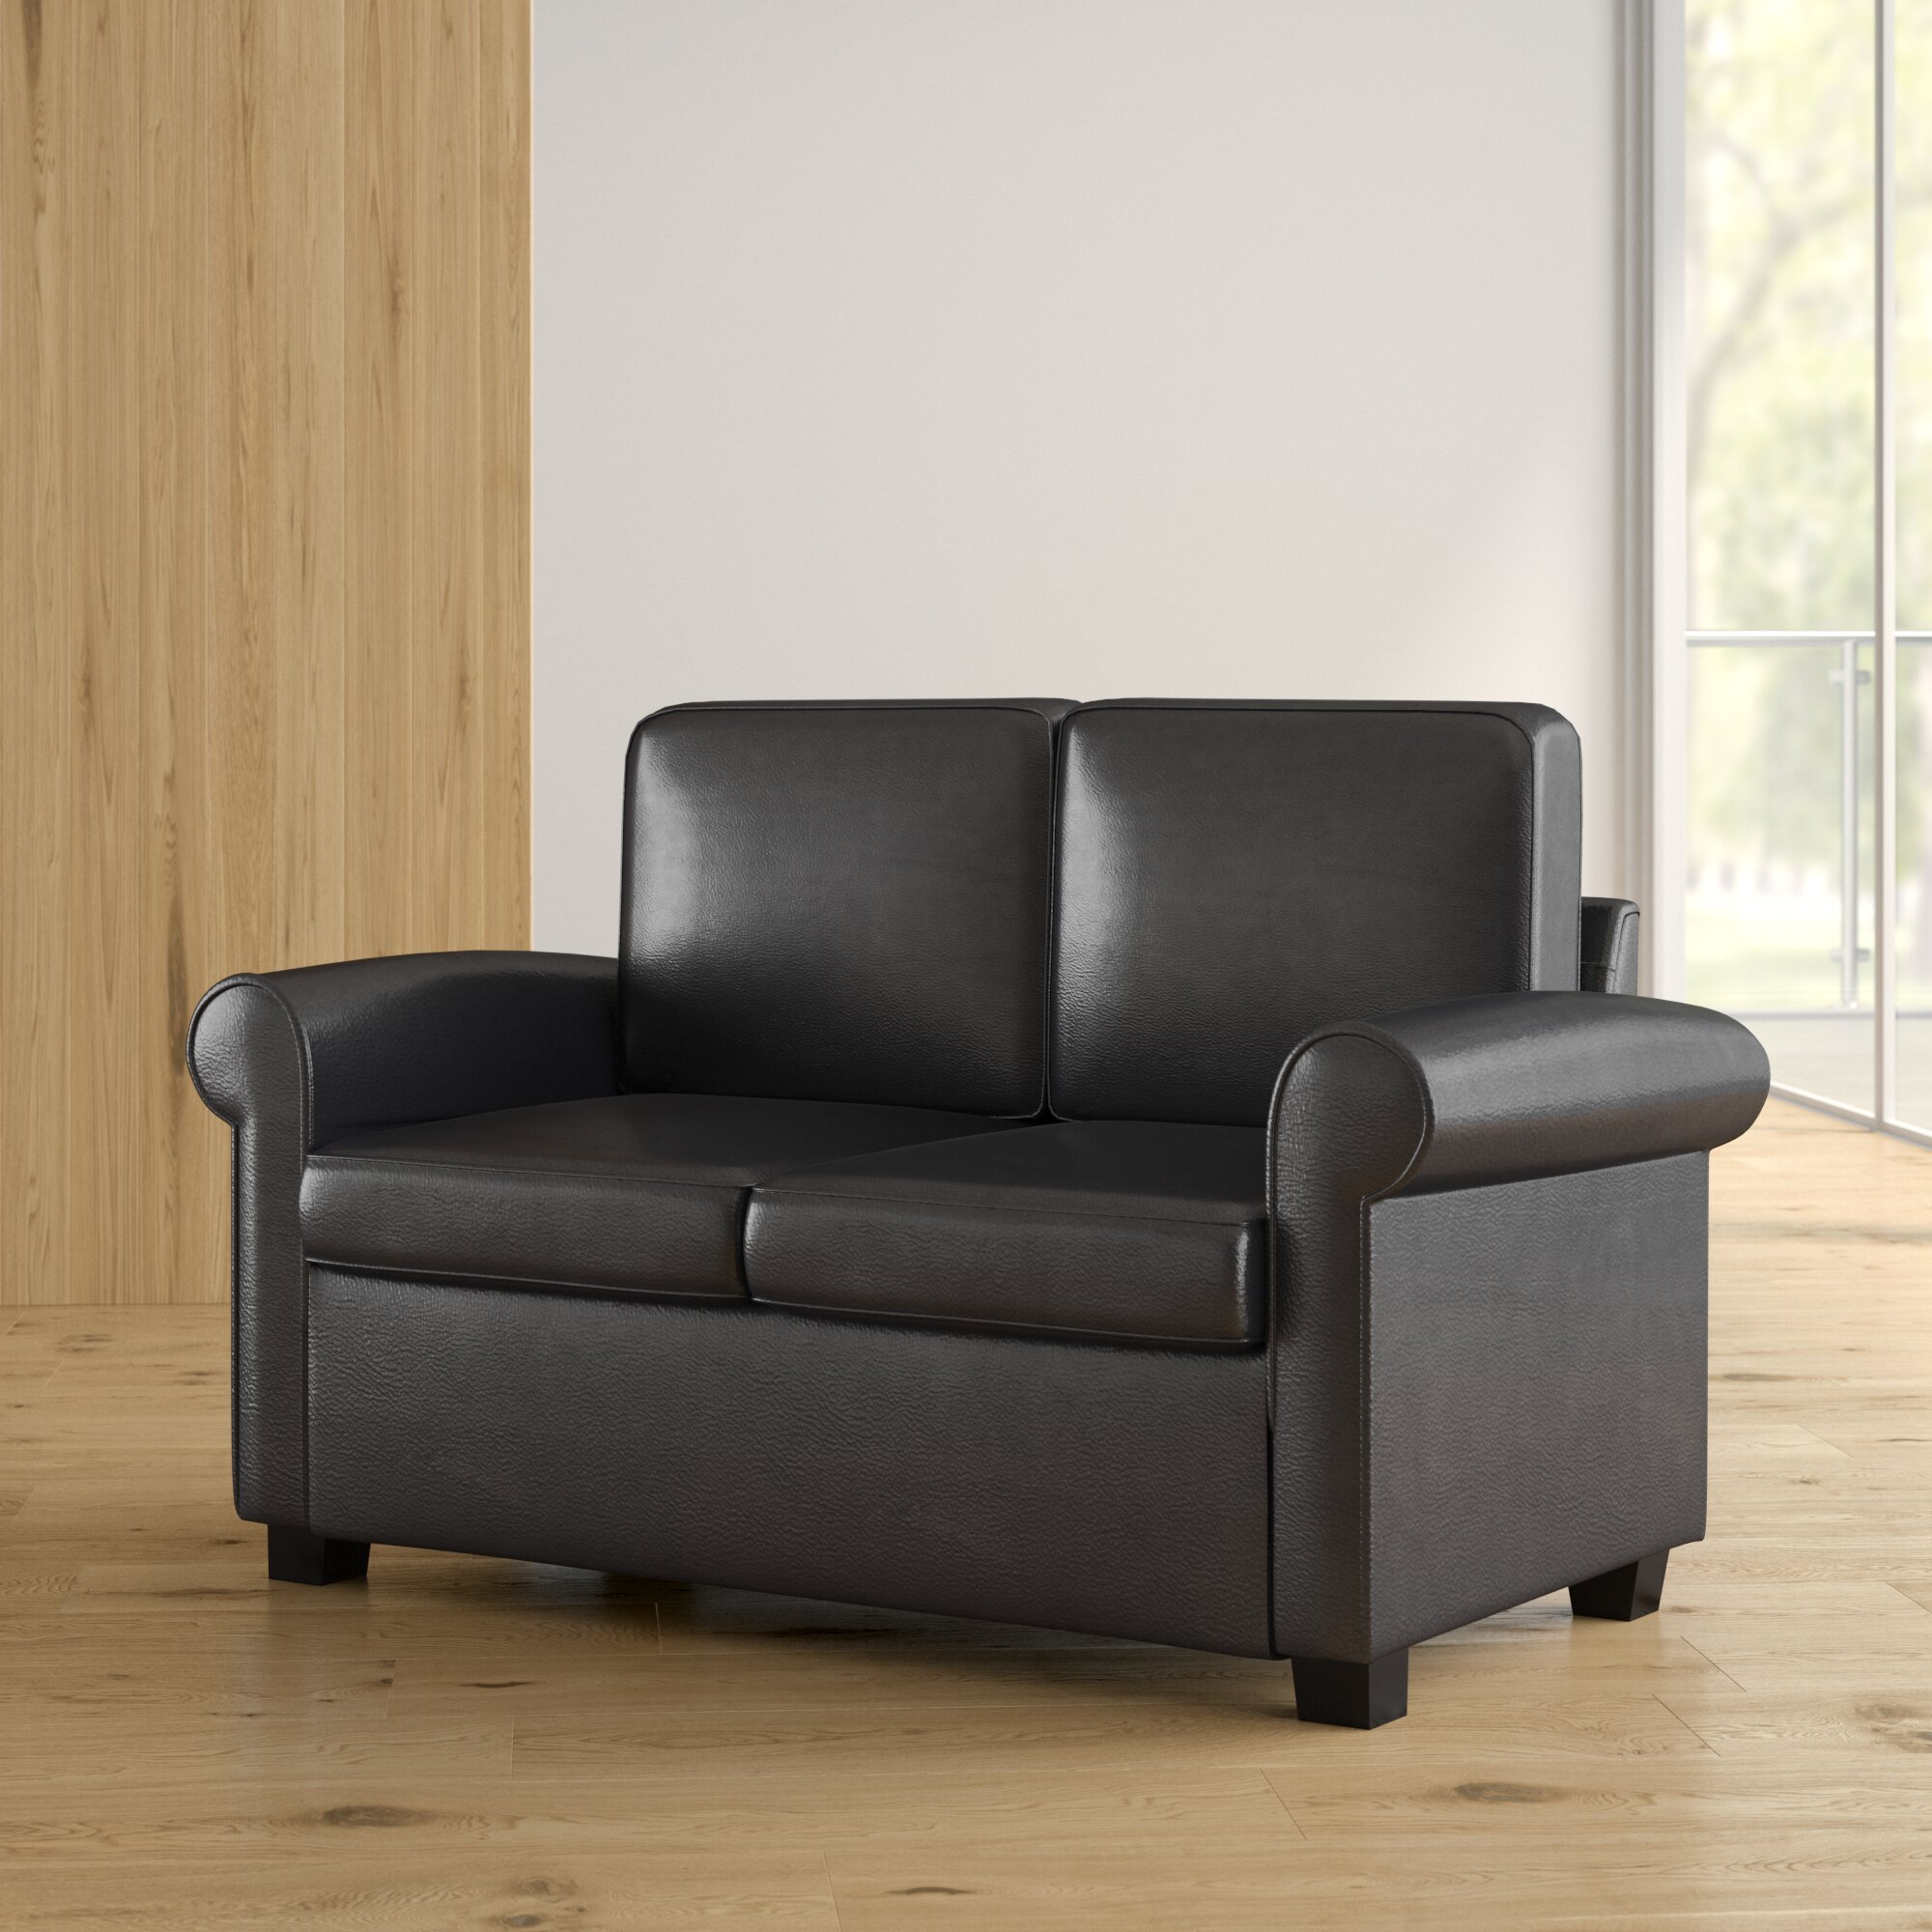 Studio Sofa Beds Looking For Sofa Beds Or Leather Bed We